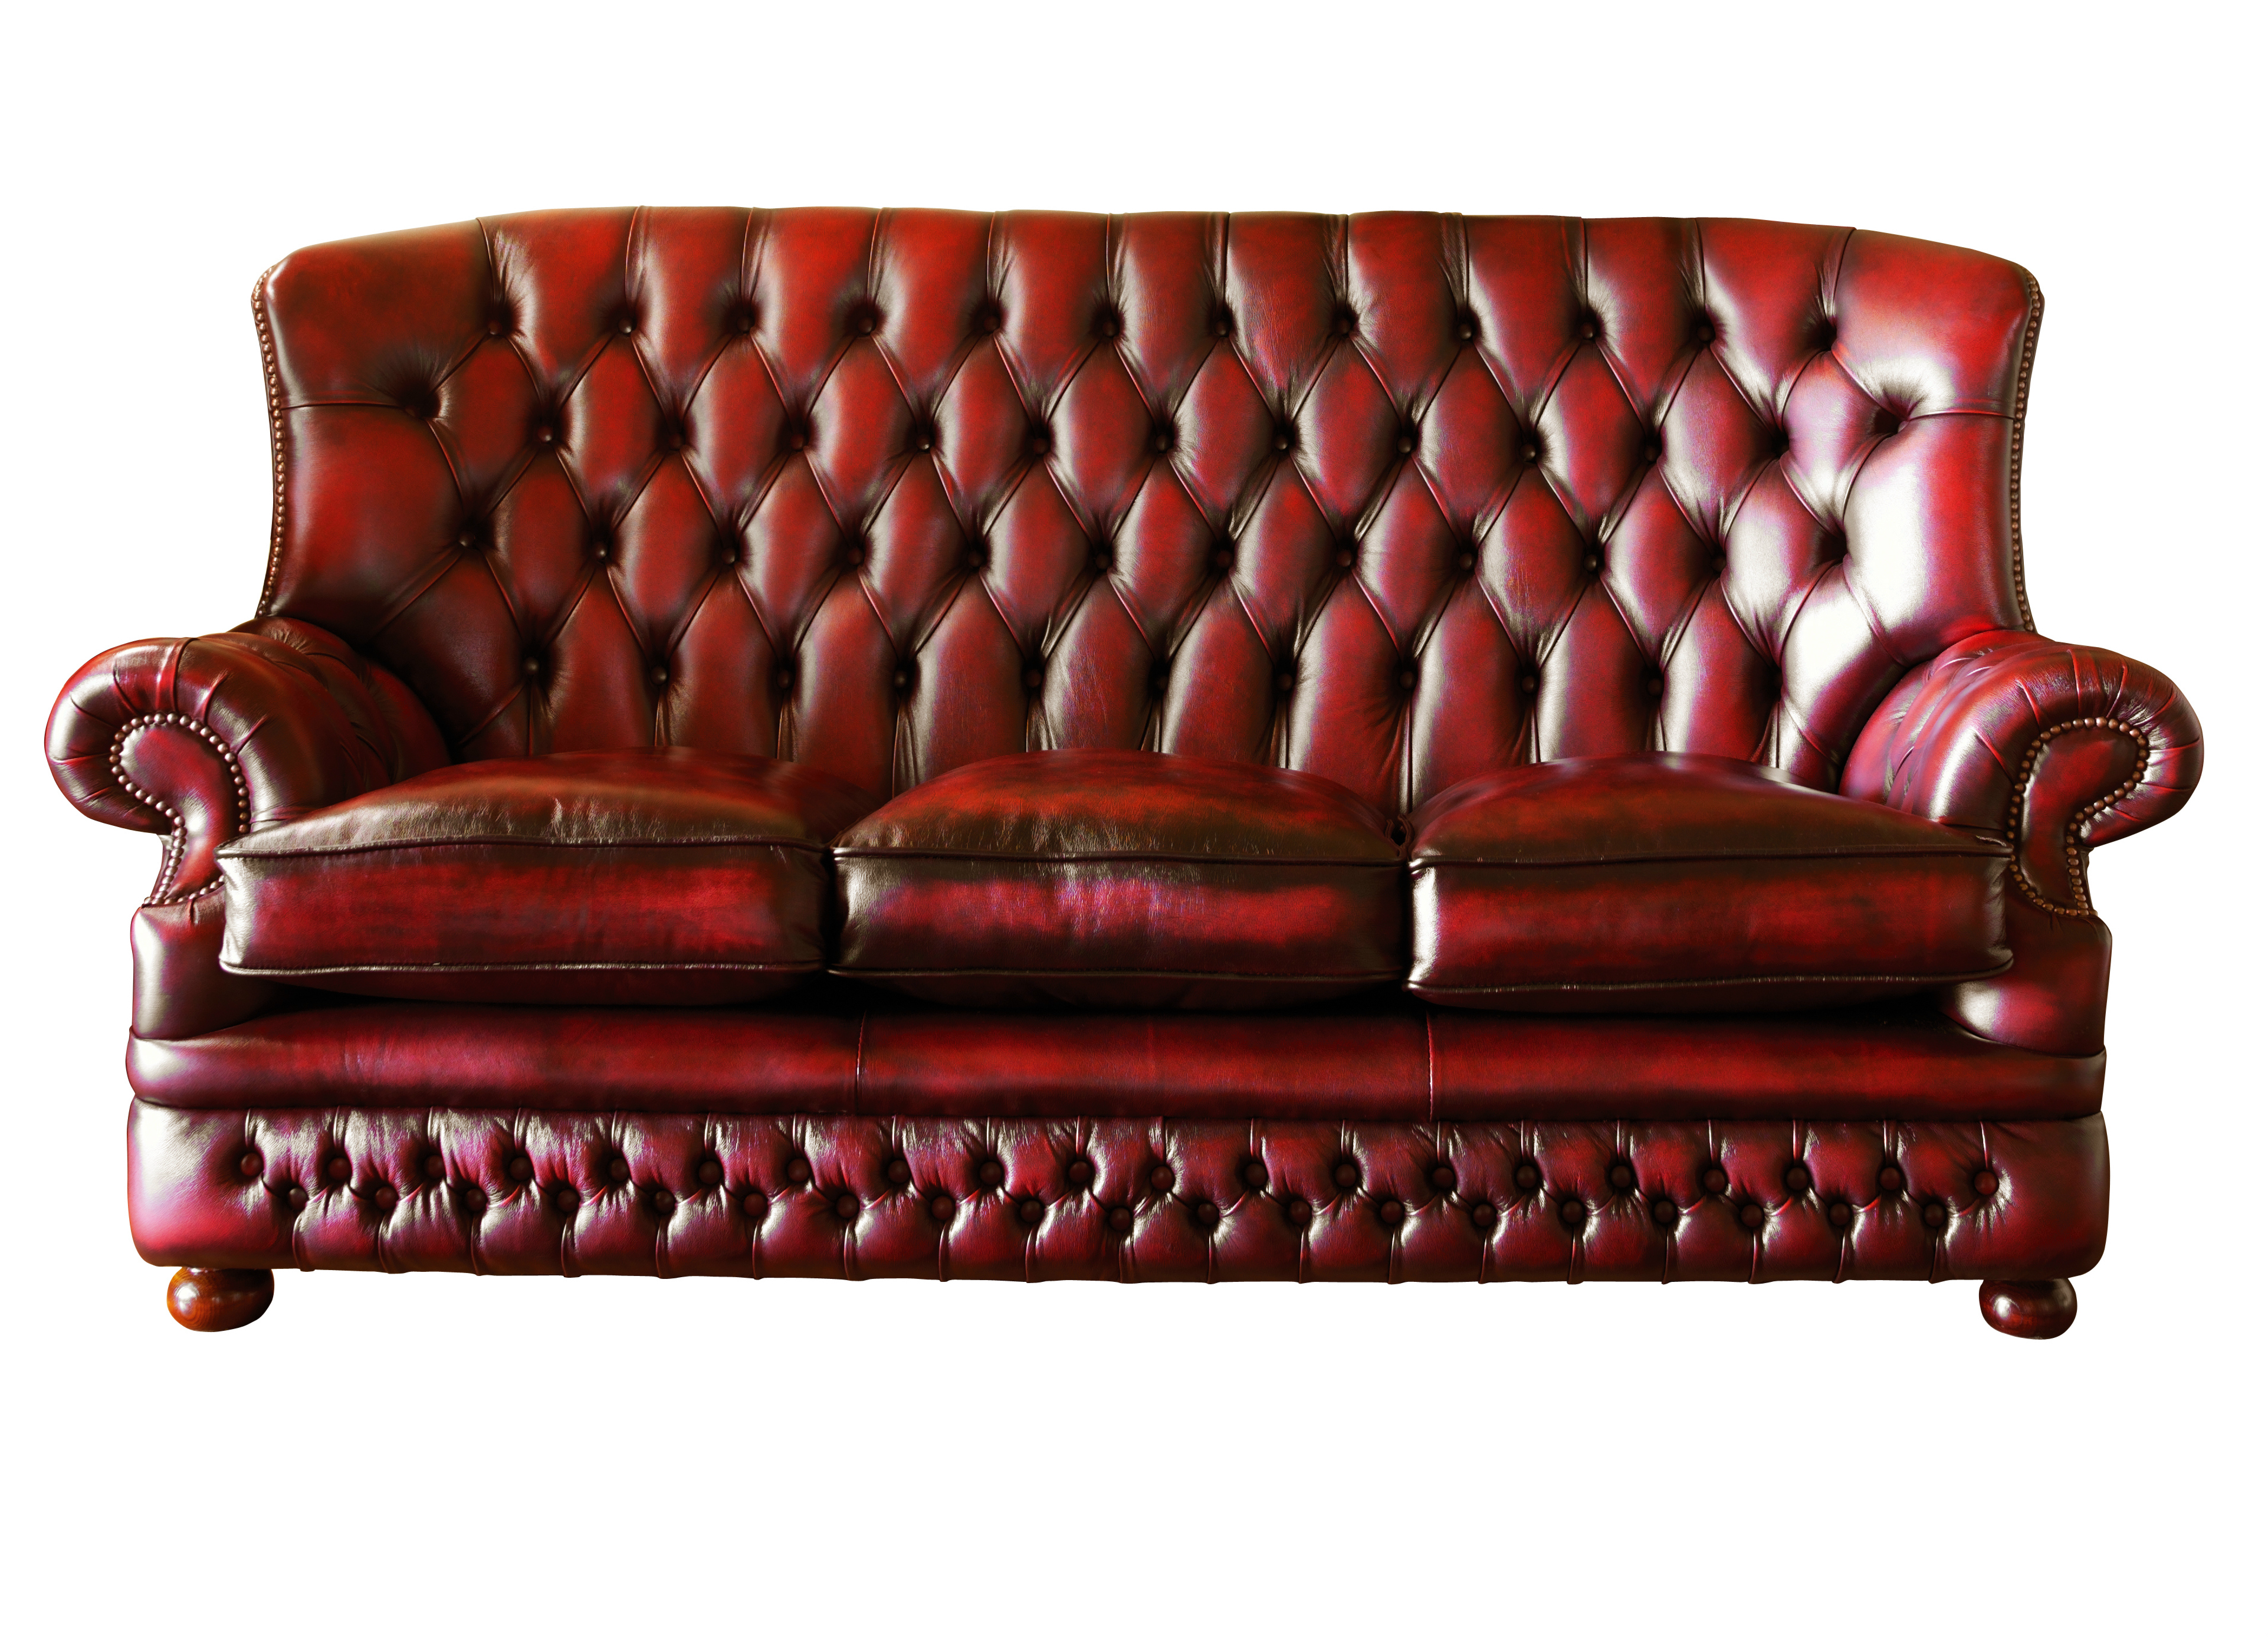 new leather chesterfield sofa photo-Lovely Leather Chesterfield sofa Plan